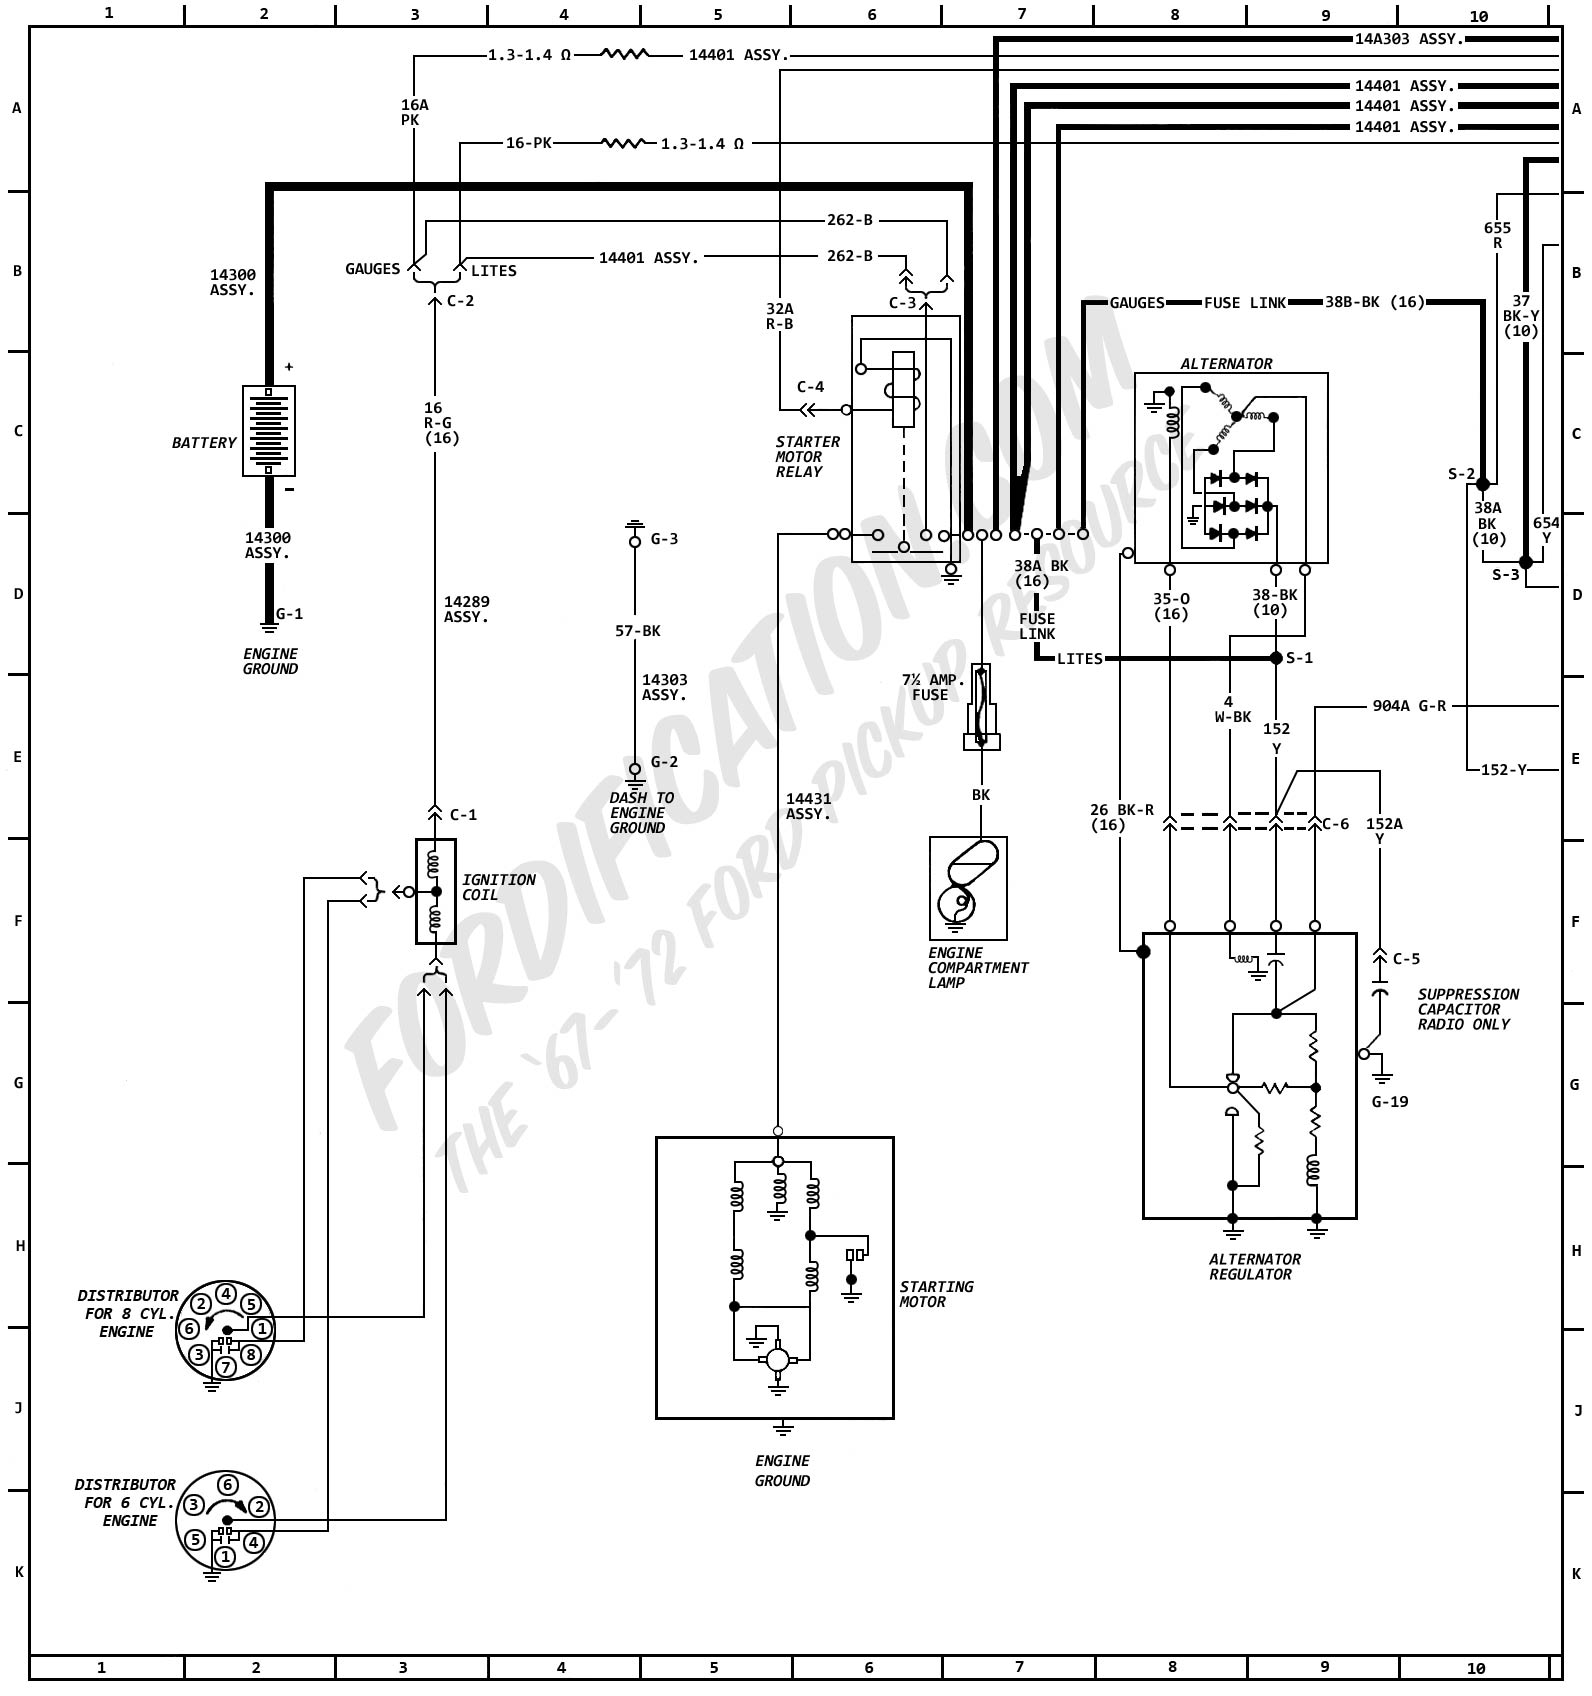 1972MasterWiring_01 1972 ford truck wiring diagrams fordification com ford truck wiring diagrams at reclaimingppi.co